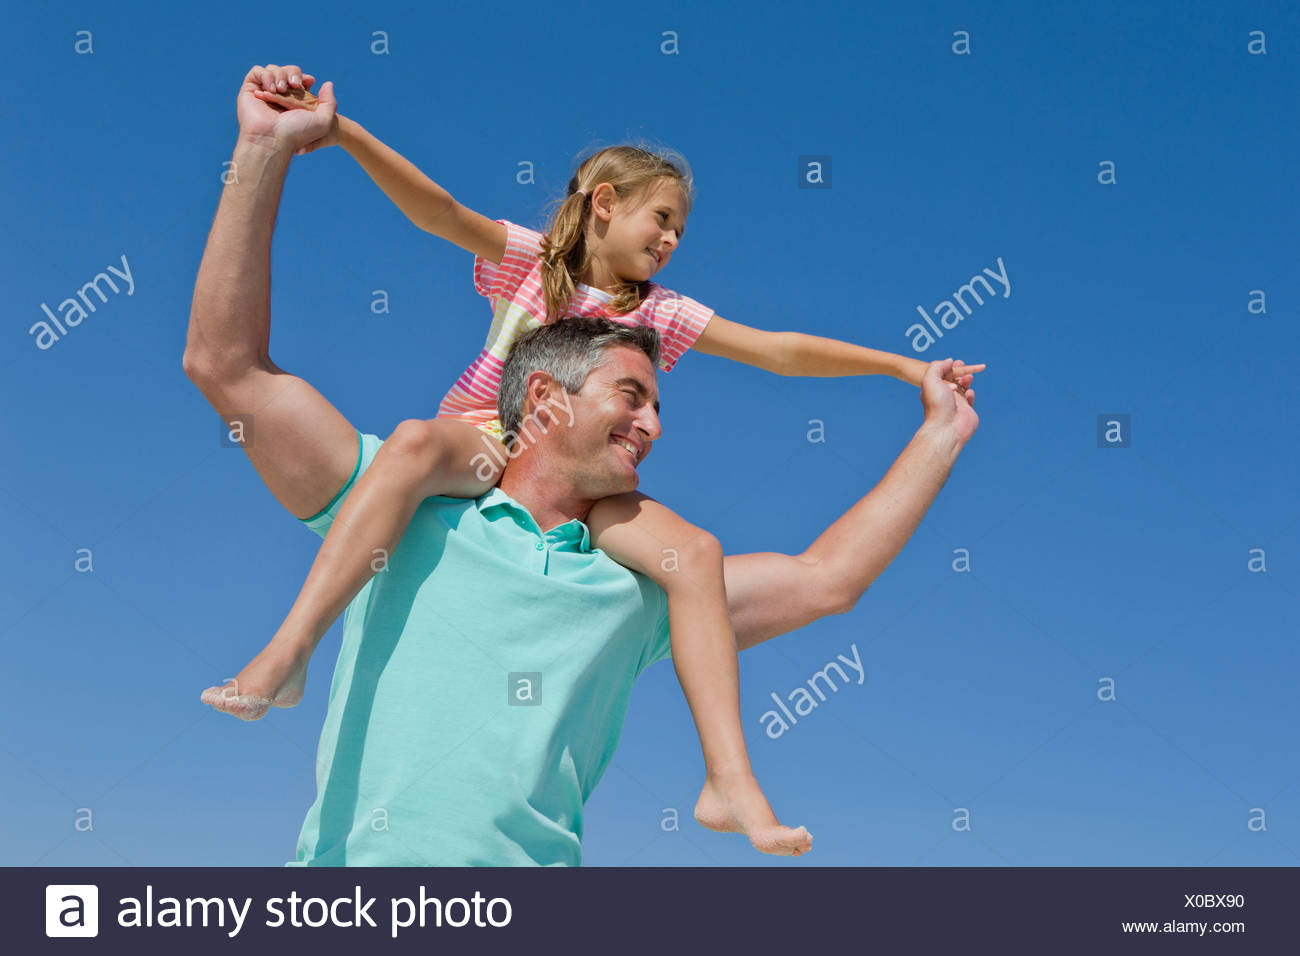 Father carrying daughter on shoulders against blue sky - Stock Image